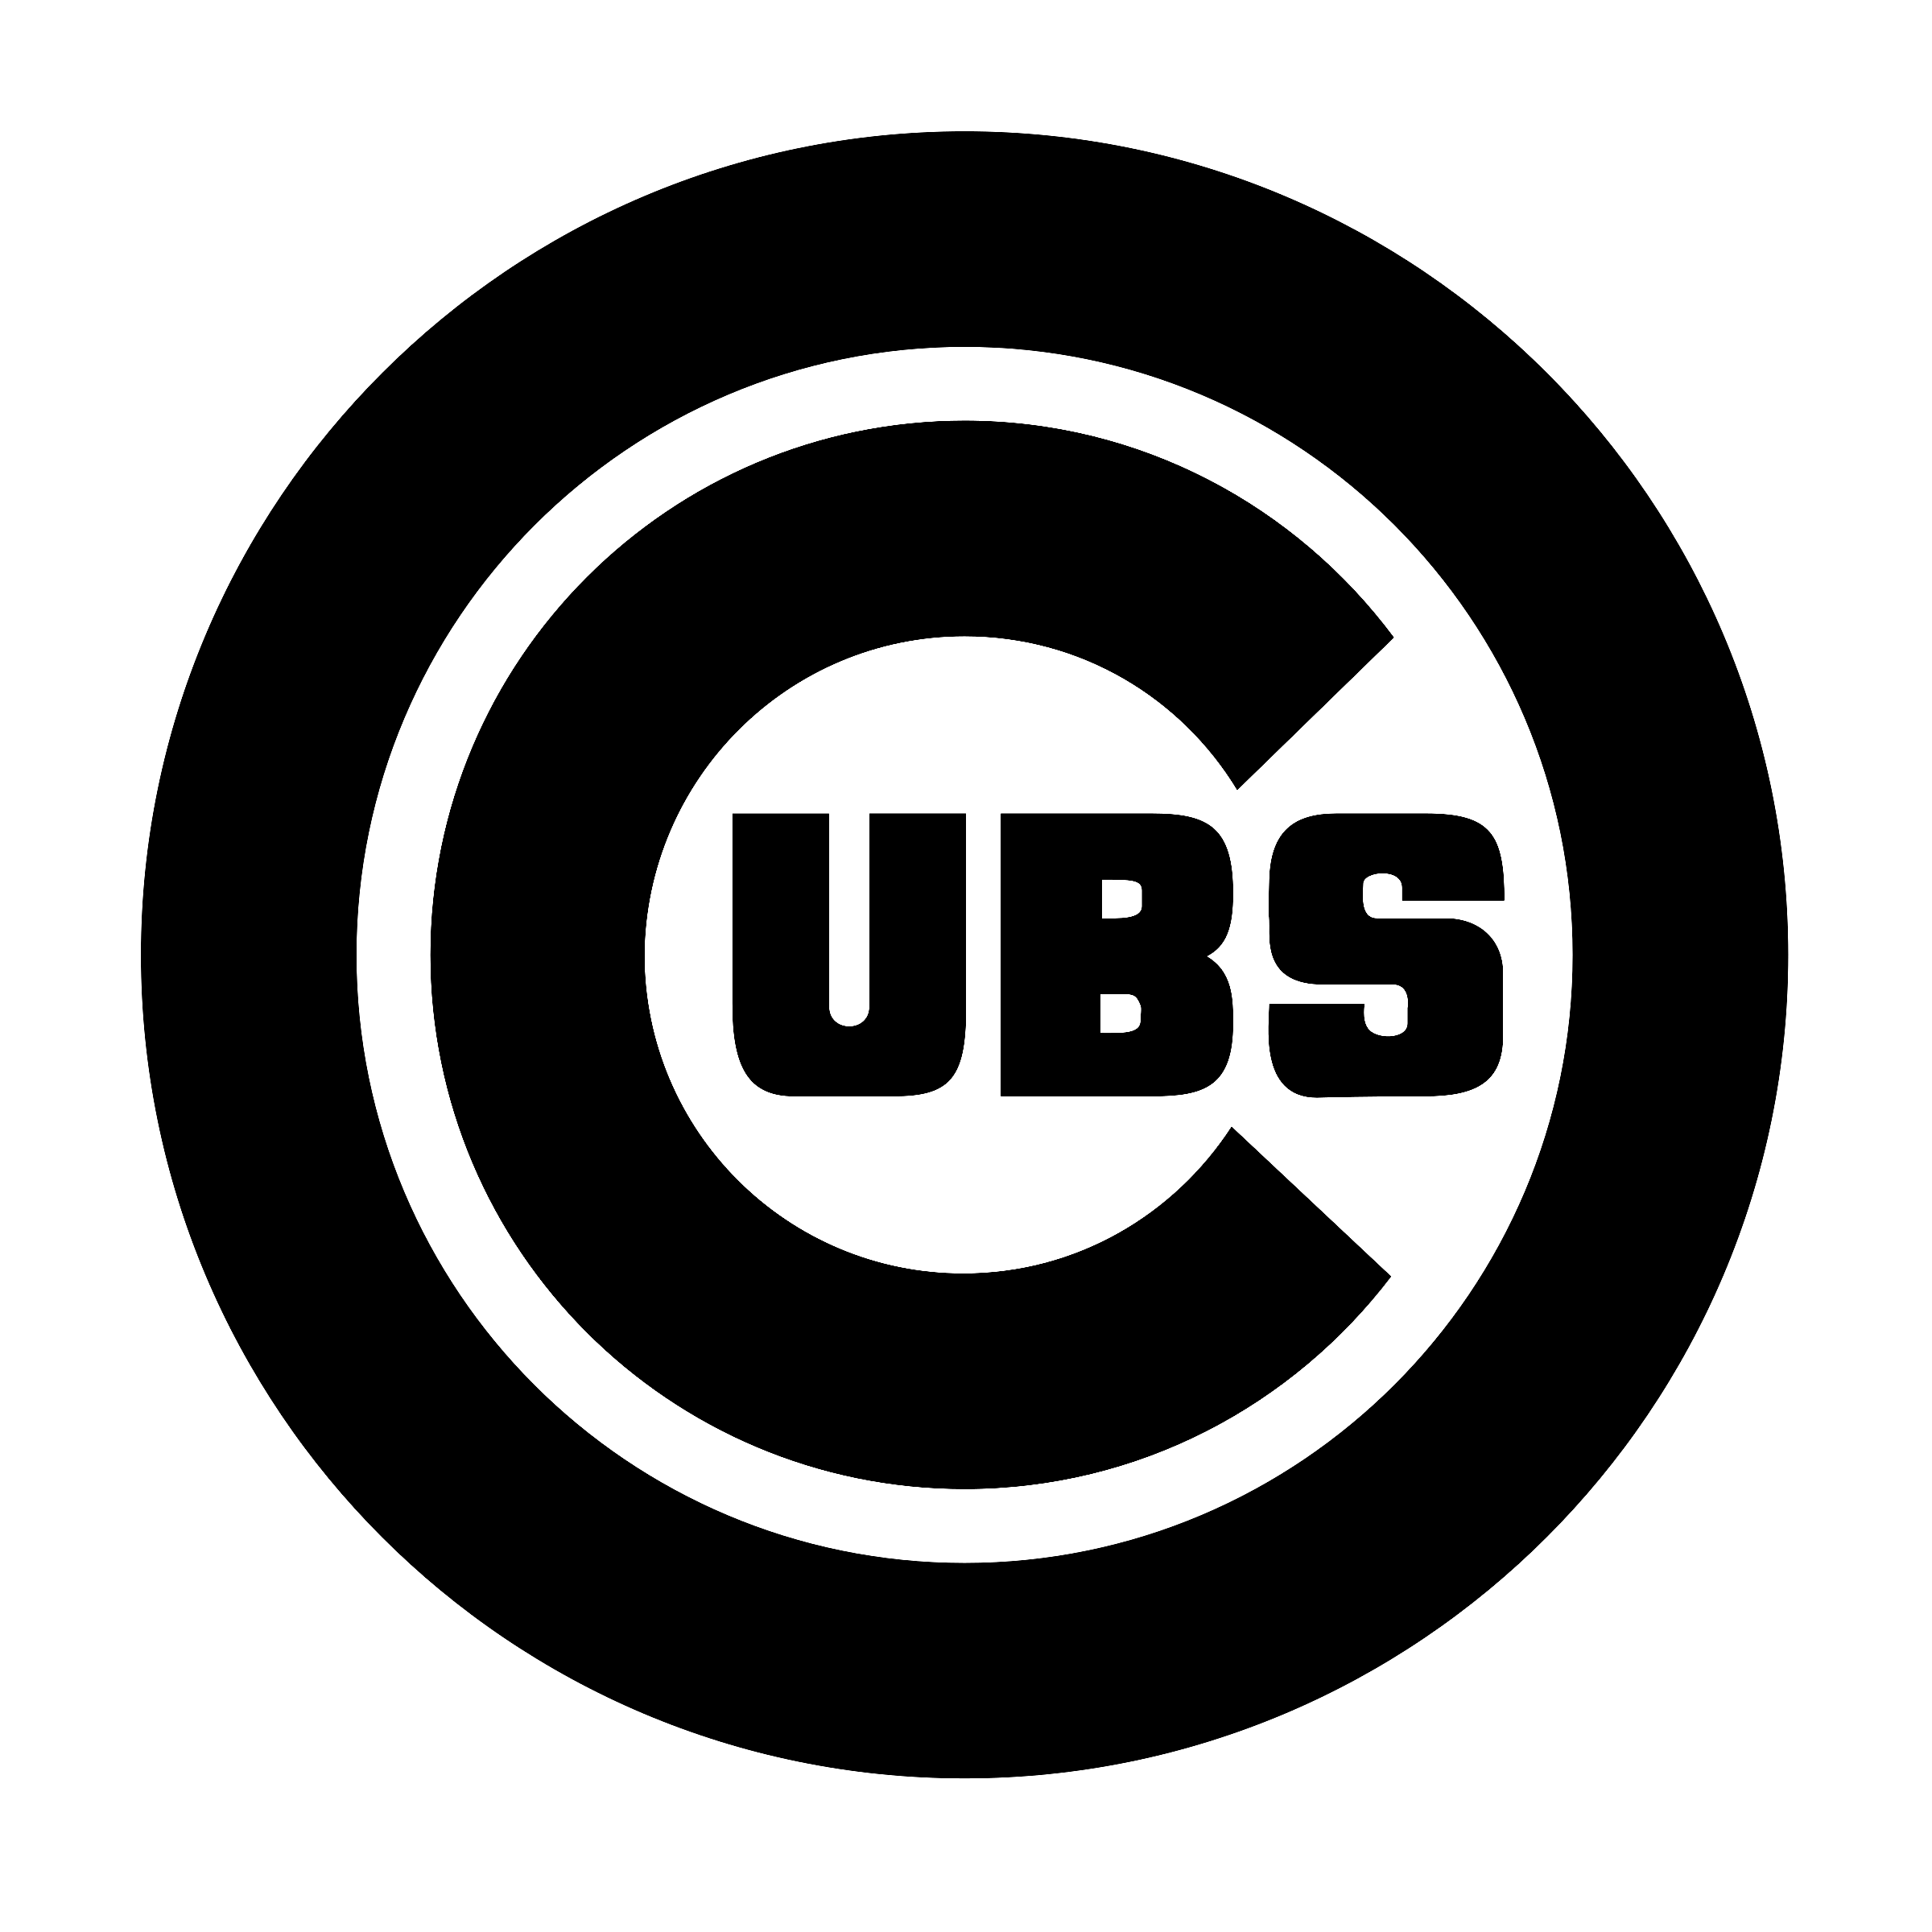 Chicago Cubs logo black and white - Chicago Cubs Logo PNG